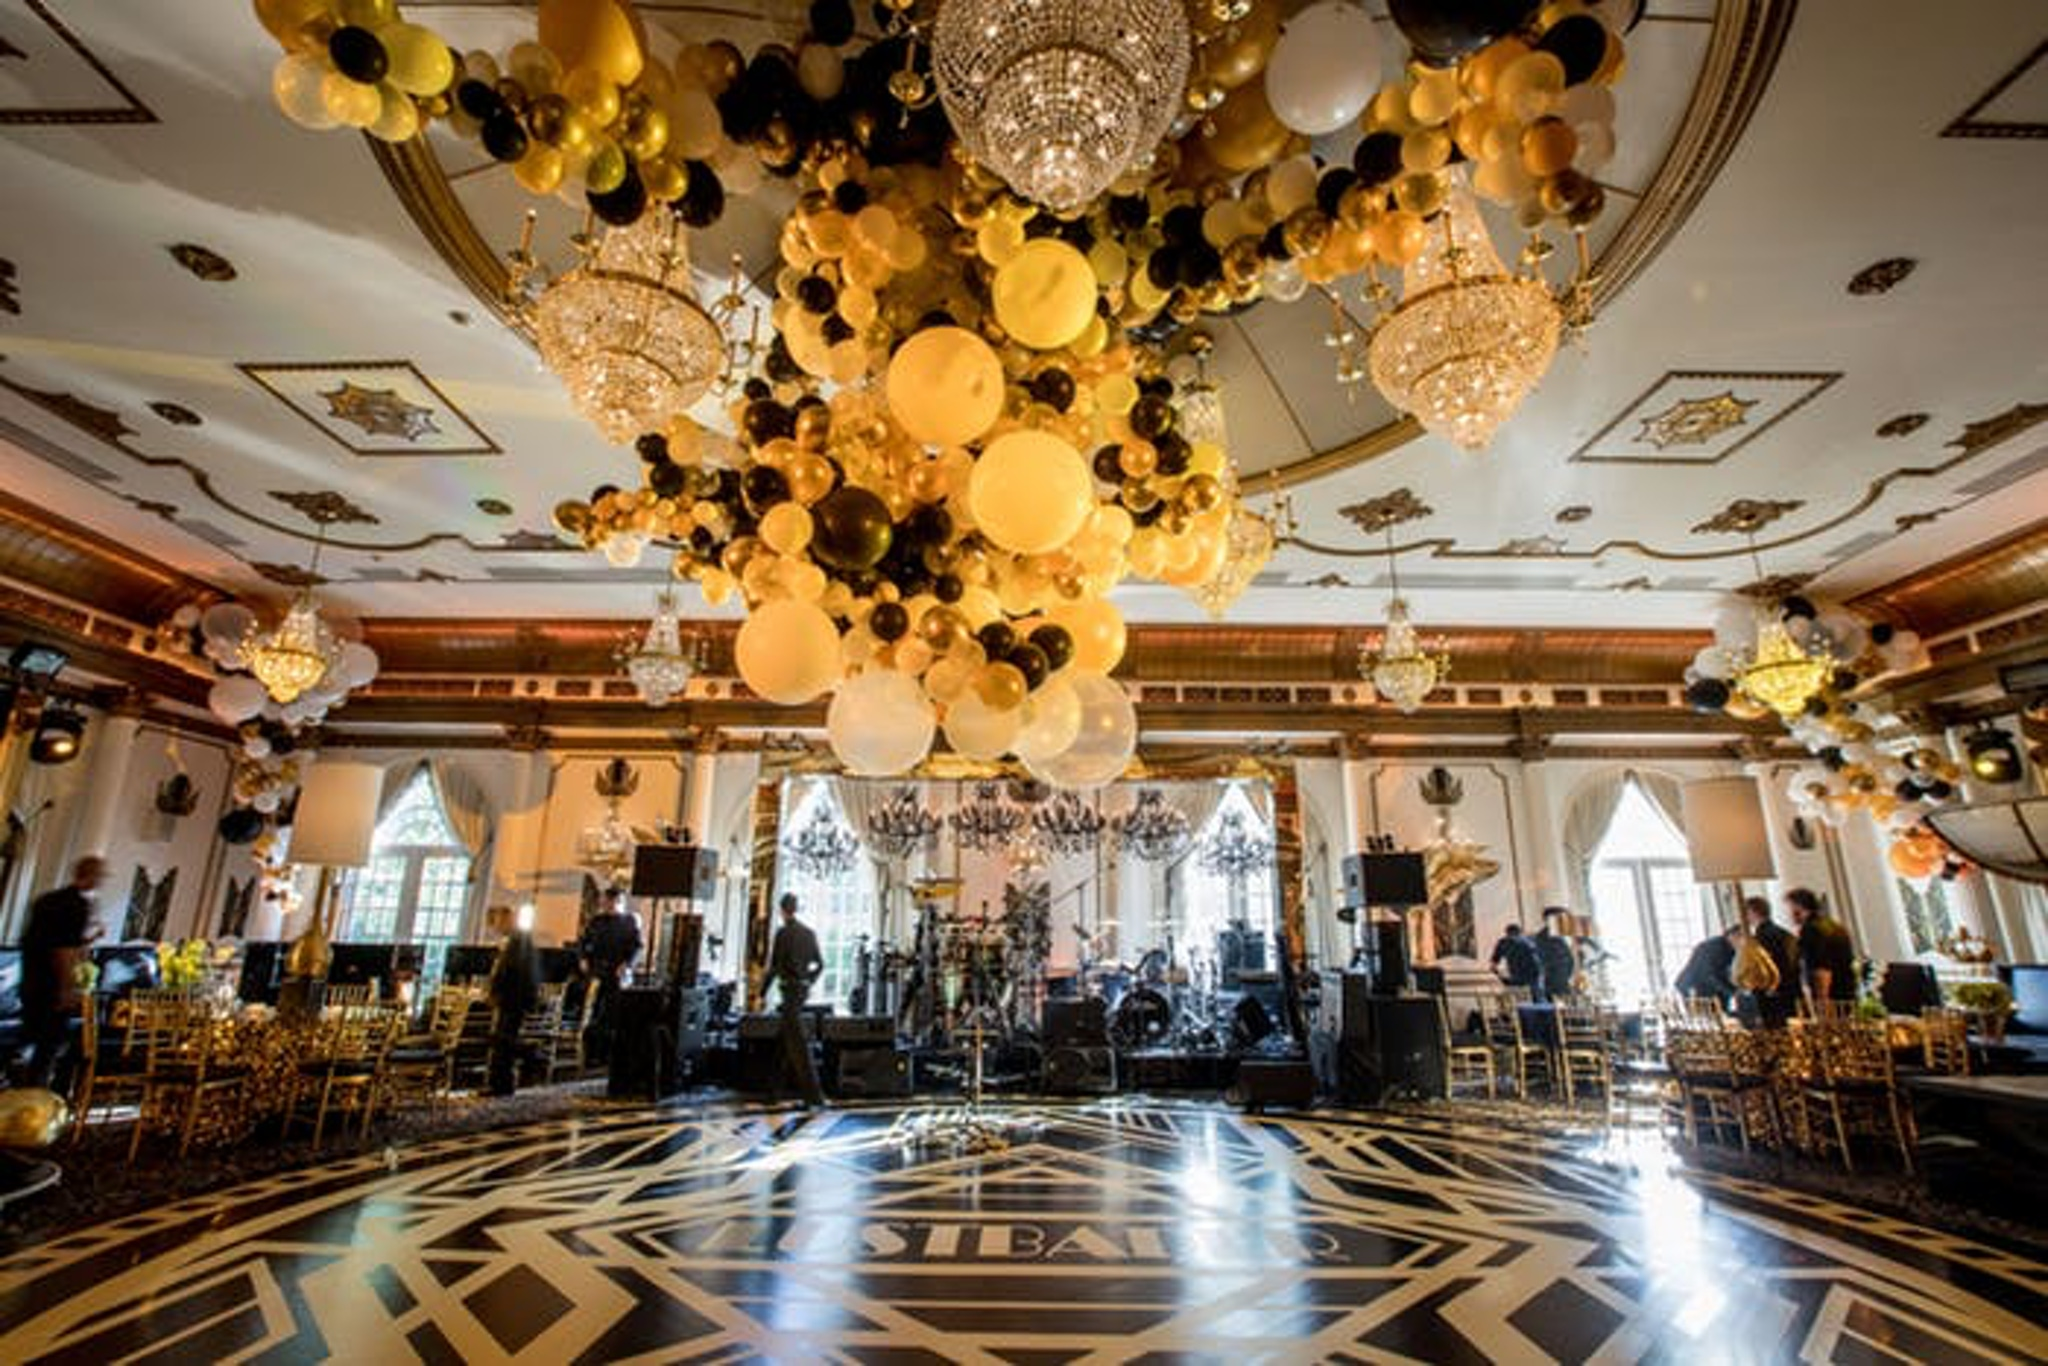 Gold and black balloons and decor